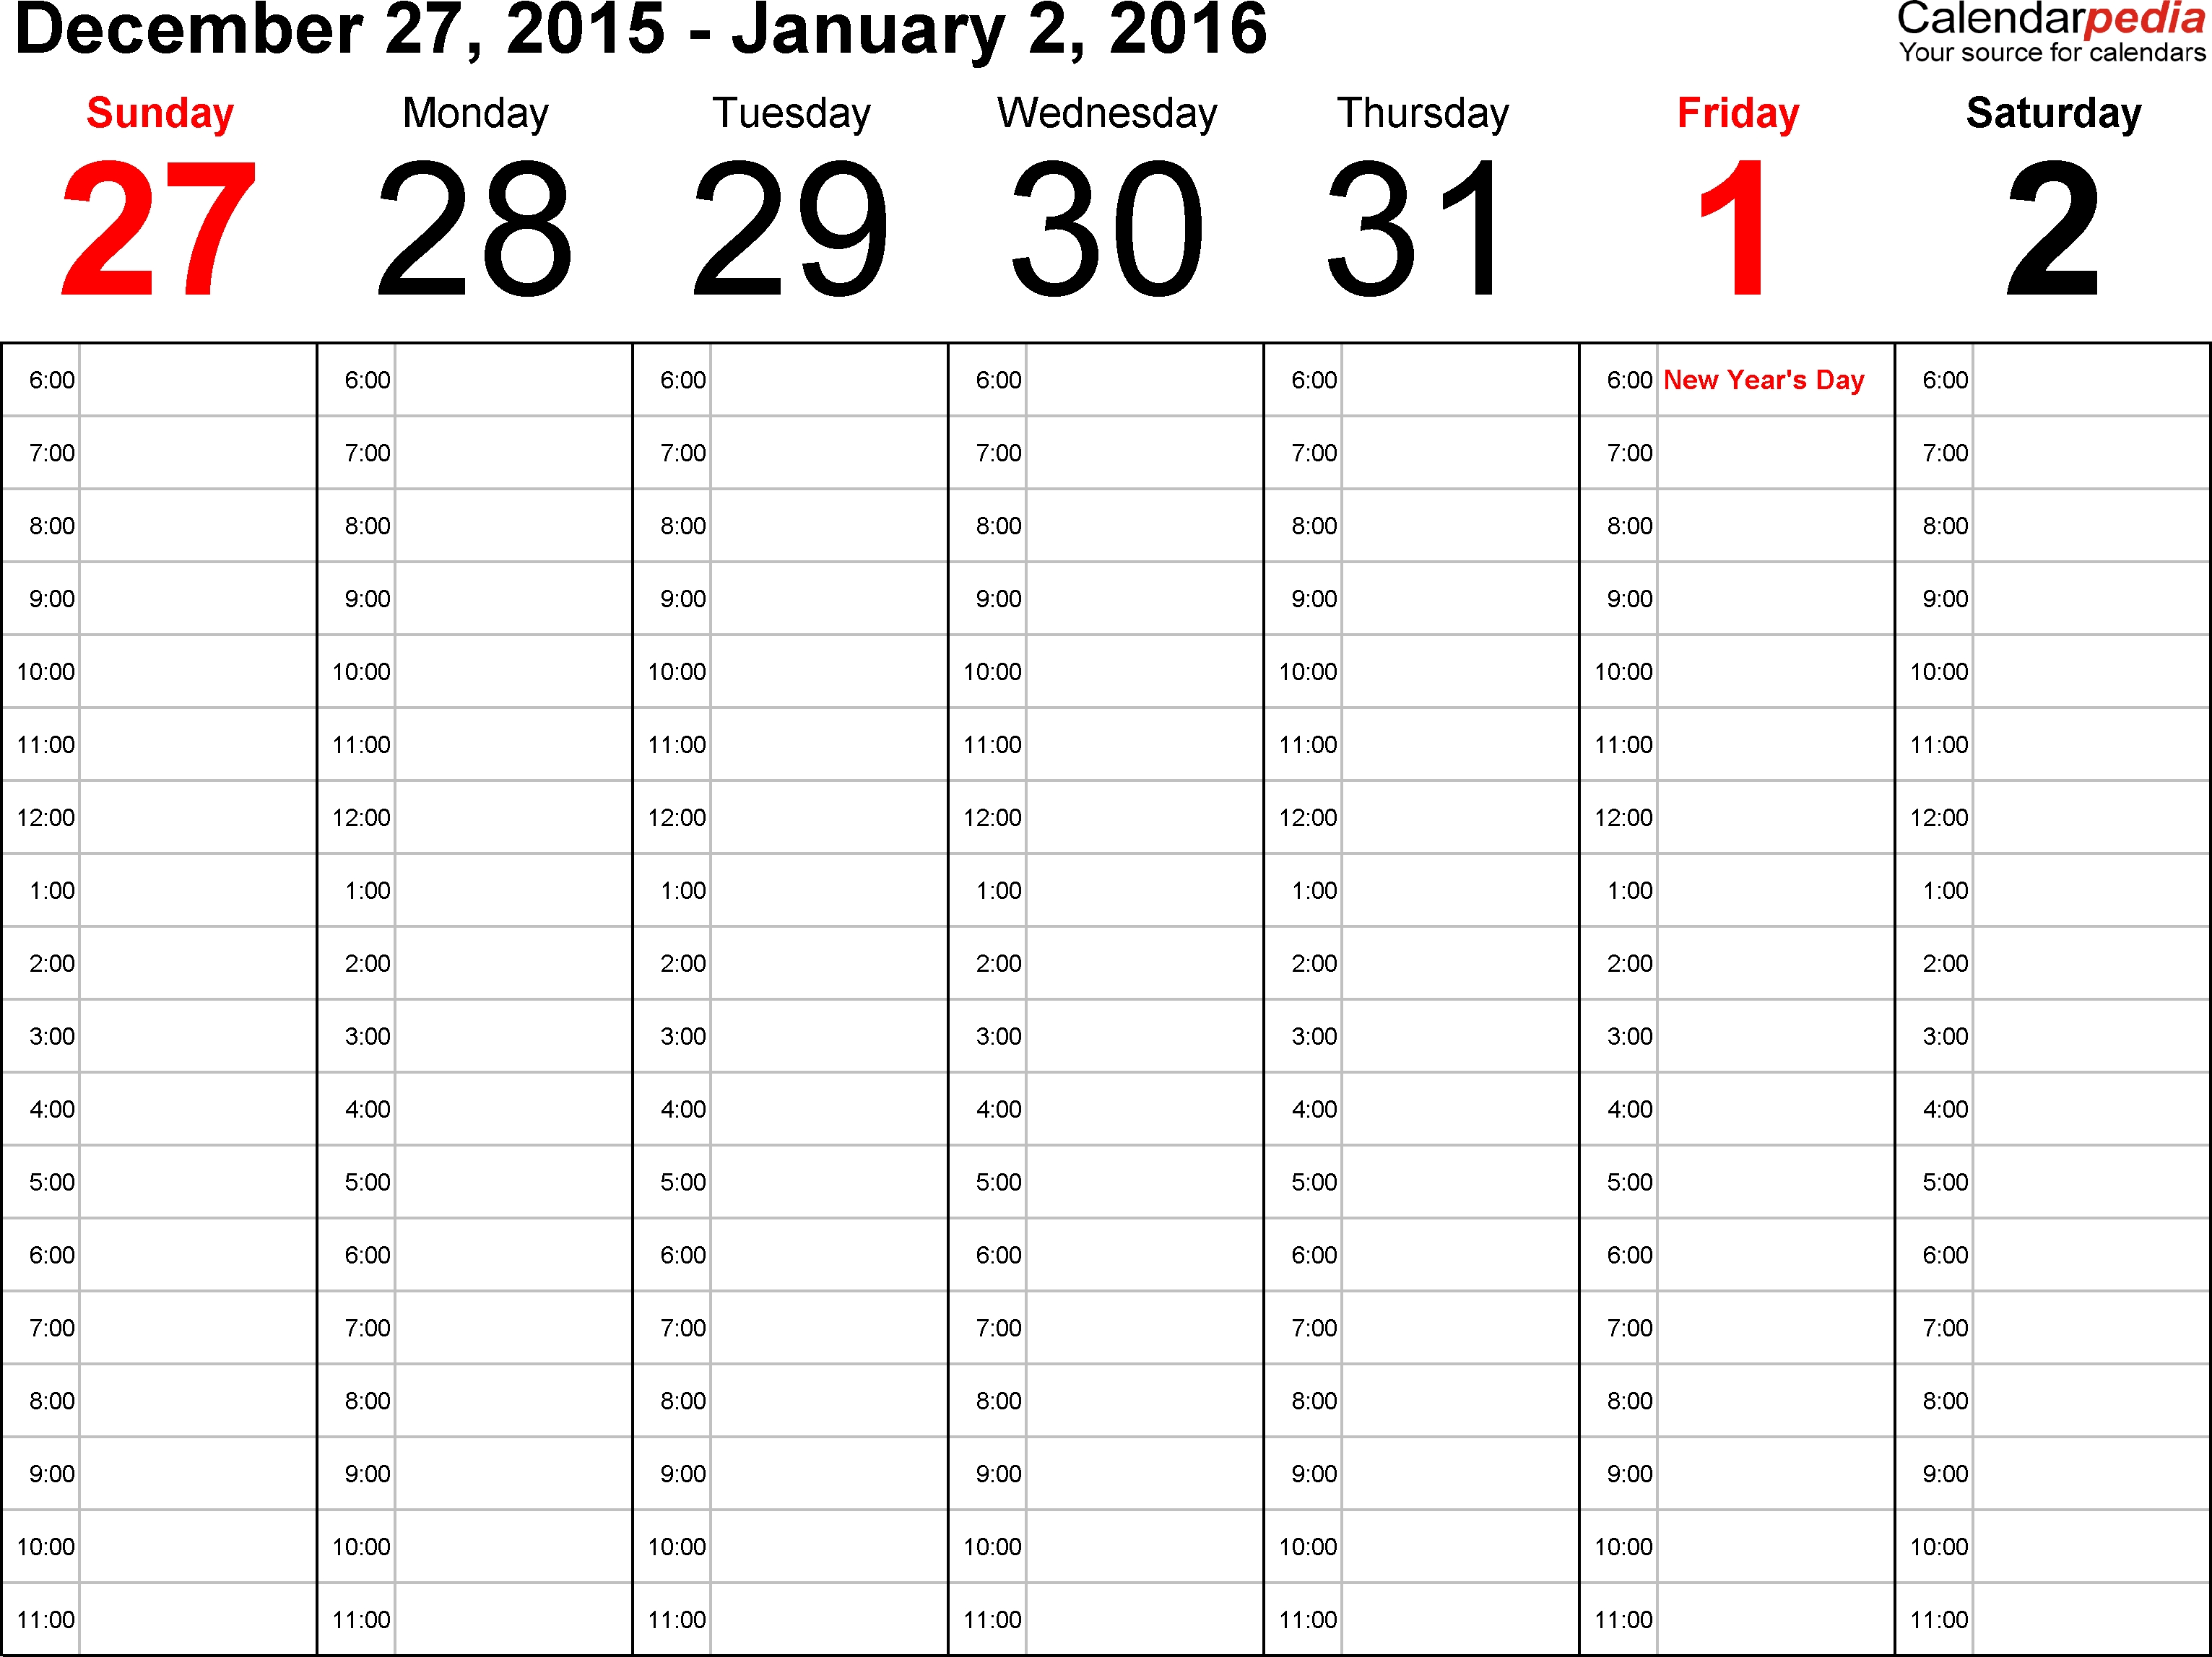 Weekly Calendars 2016 For Excel - 12 Free Printable Templates